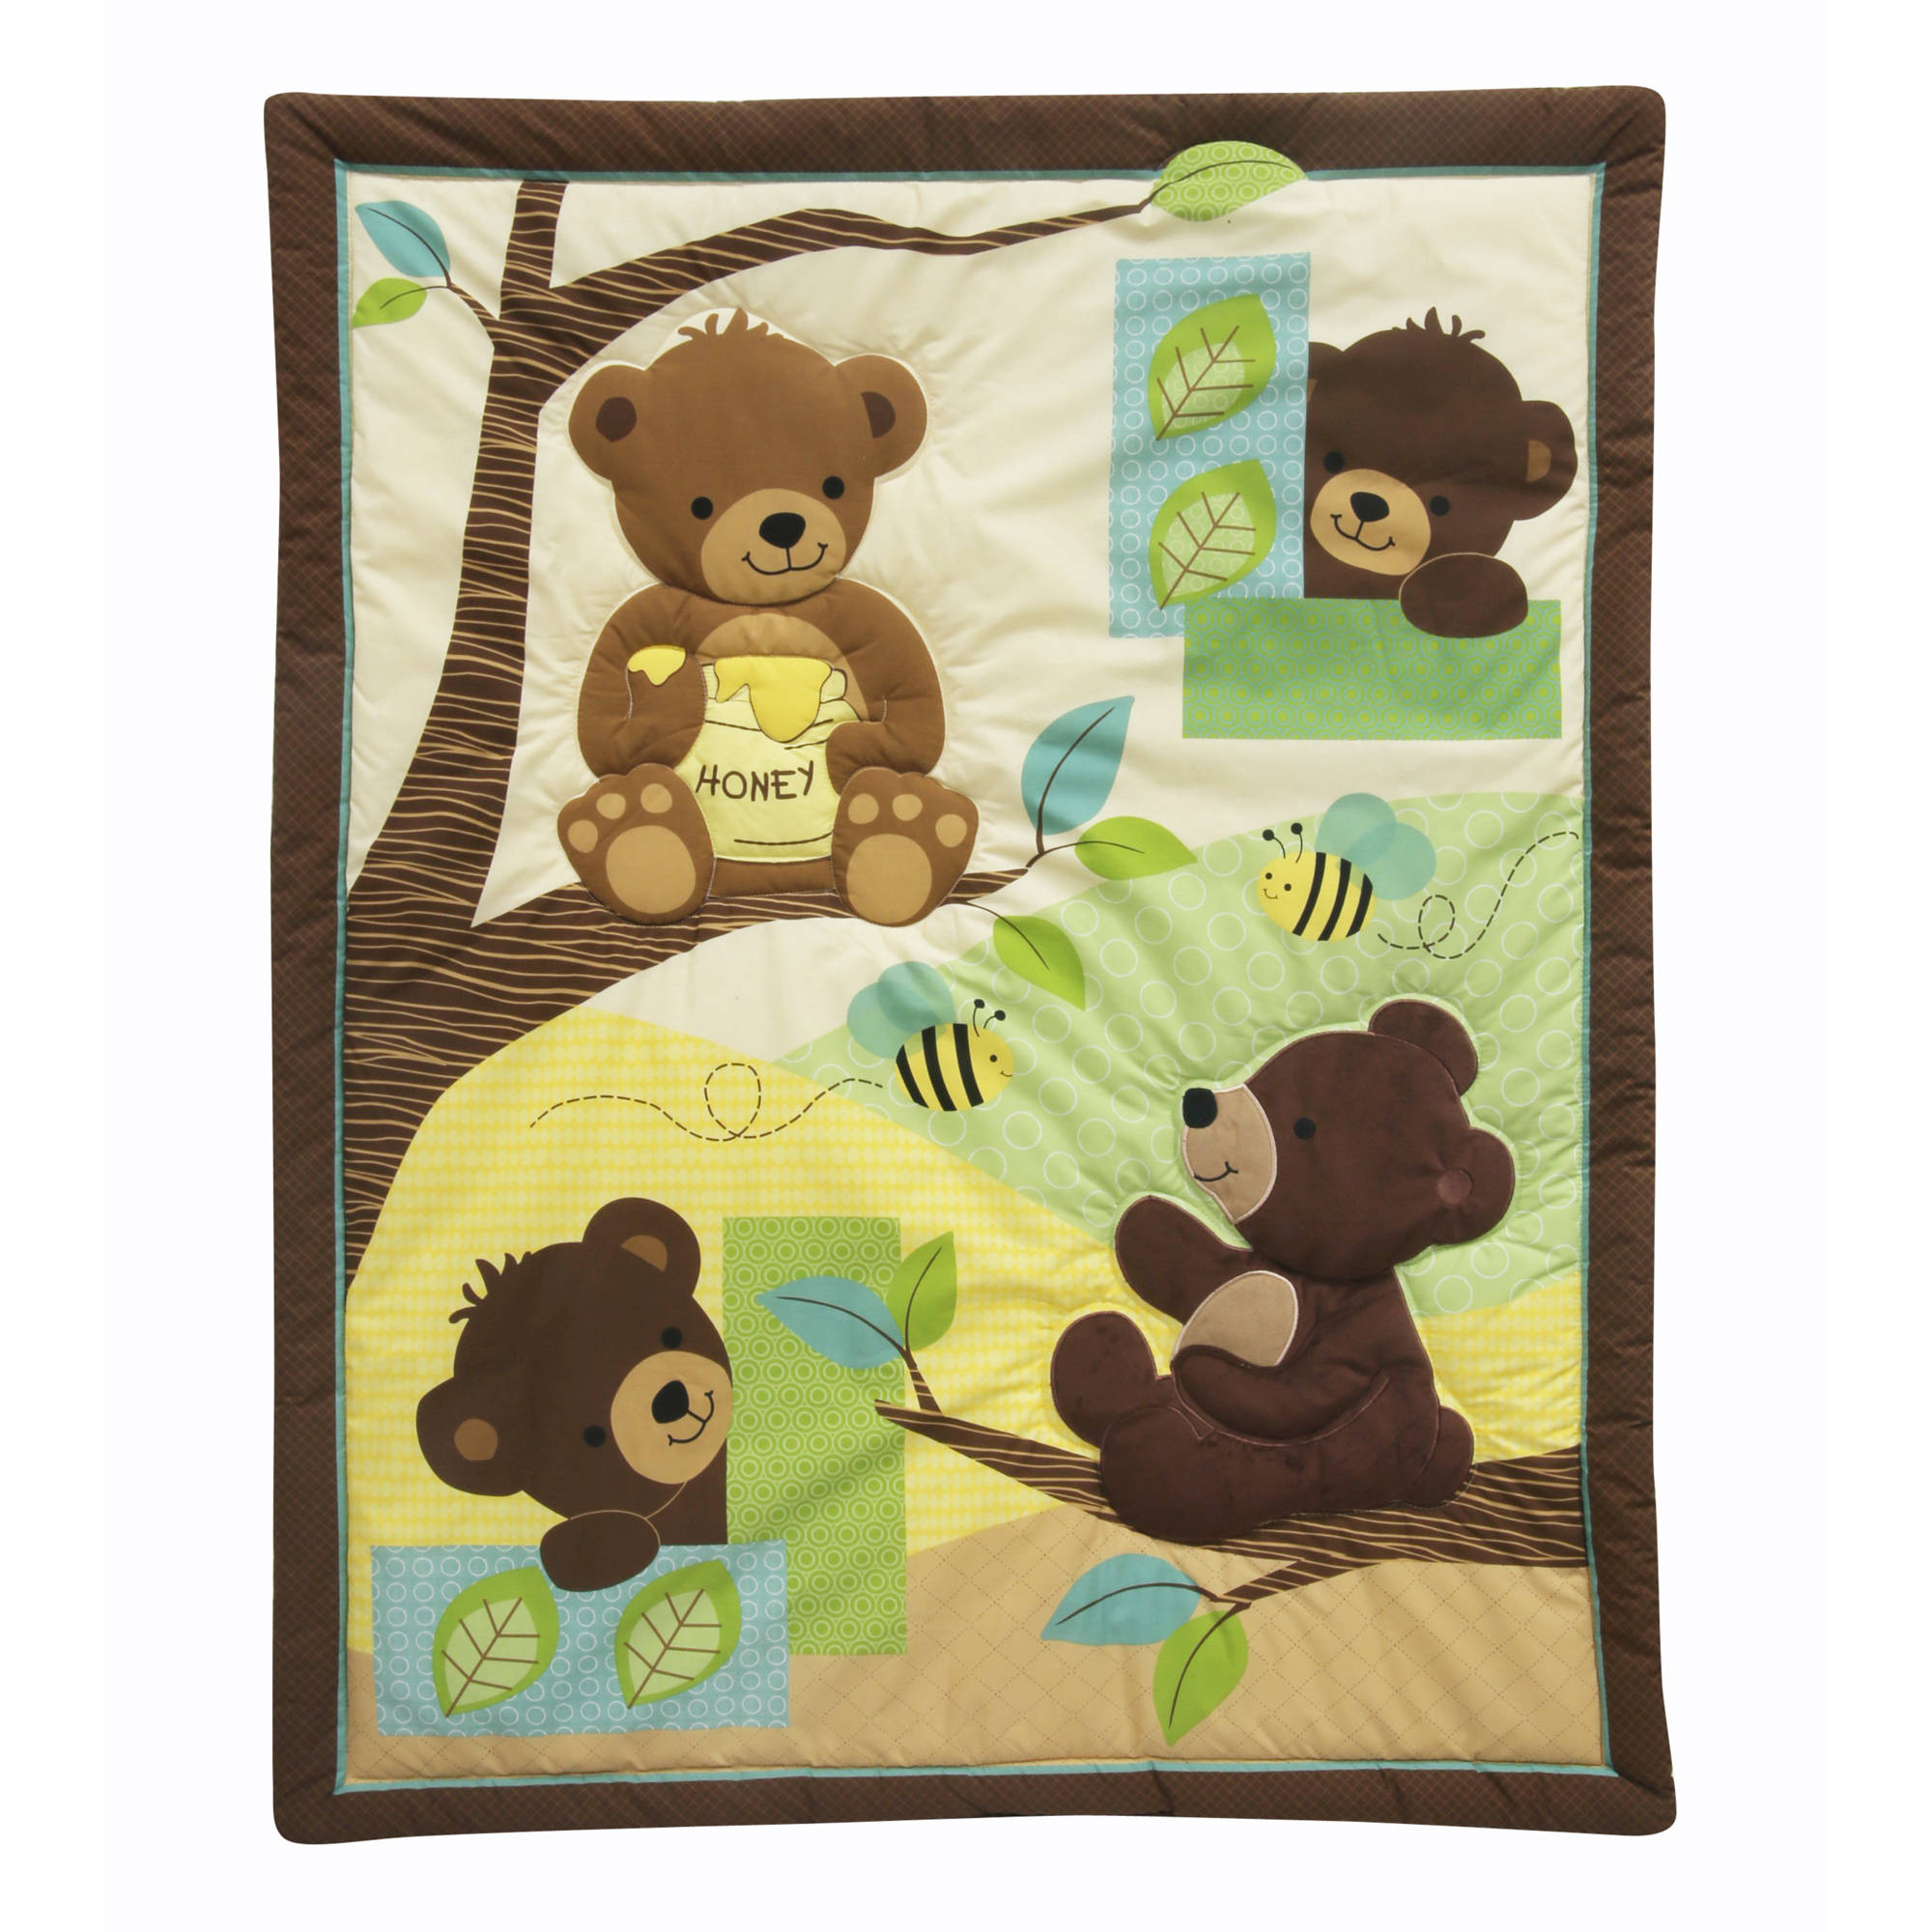 Amazing Lambs U0026 Ivy Bedtime Originals Honey Bear 3 Piece Crib Bedding Set    Walmart.com